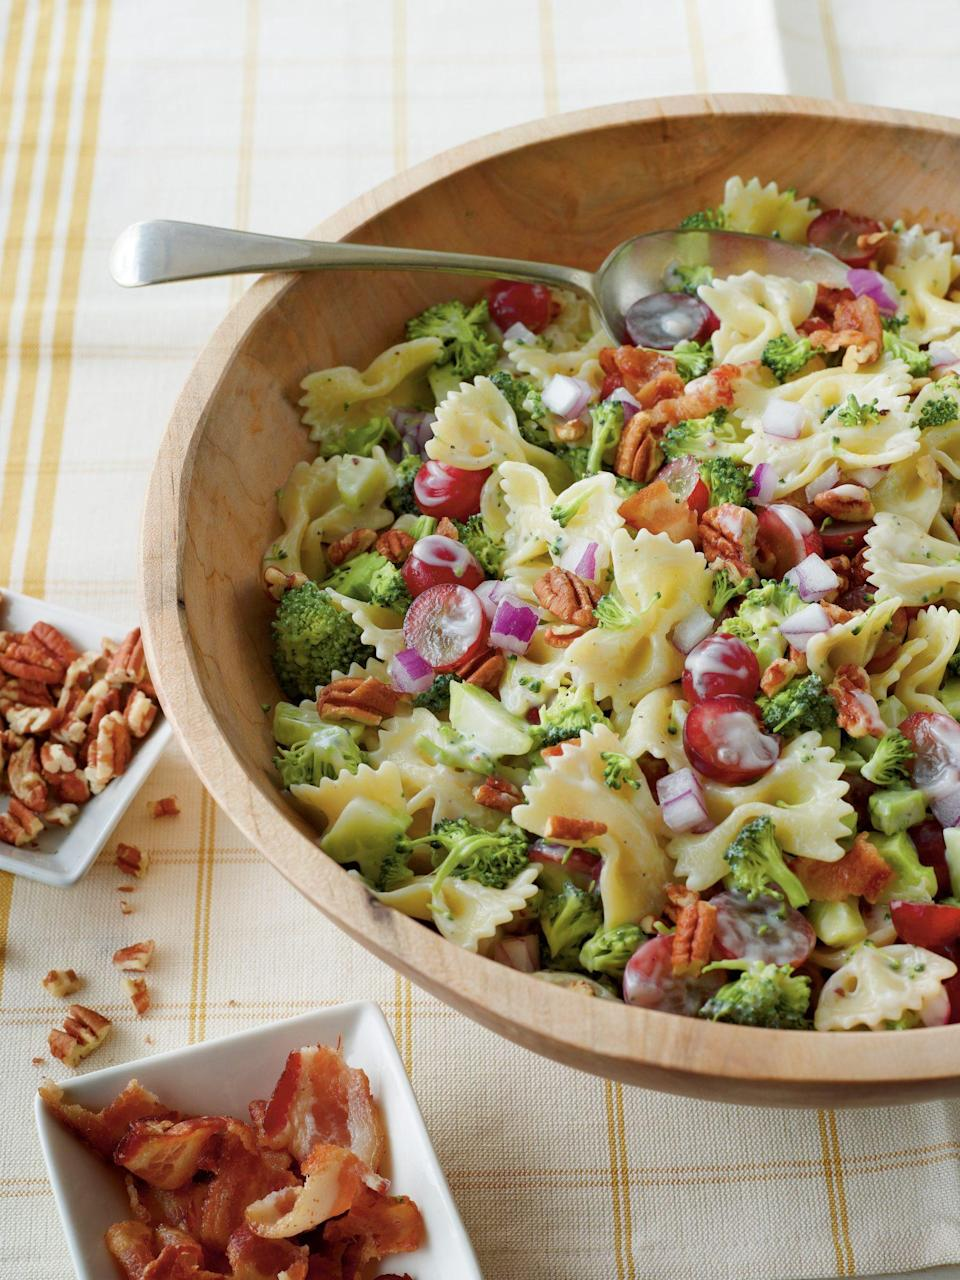 """<p><strong>Recipe:</strong> <a href=""""https://www.southernliving.com/syndication/broccoli-grape-pasta-salad"""" rel=""""nofollow noopener"""" target=""""_blank"""" data-ylk=""""slk:Broccoli, Grape, and Pasta Salad"""" class=""""link rapid-noclick-resp"""">Broccoli, Grape, and Pasta Salad</a></p> <p>The creaminess of pasta salad meets your favorite broccoli salad in this fan-favorite dish. This make-ahead side is a staple in any Southern hostess' recipe book.</p>"""